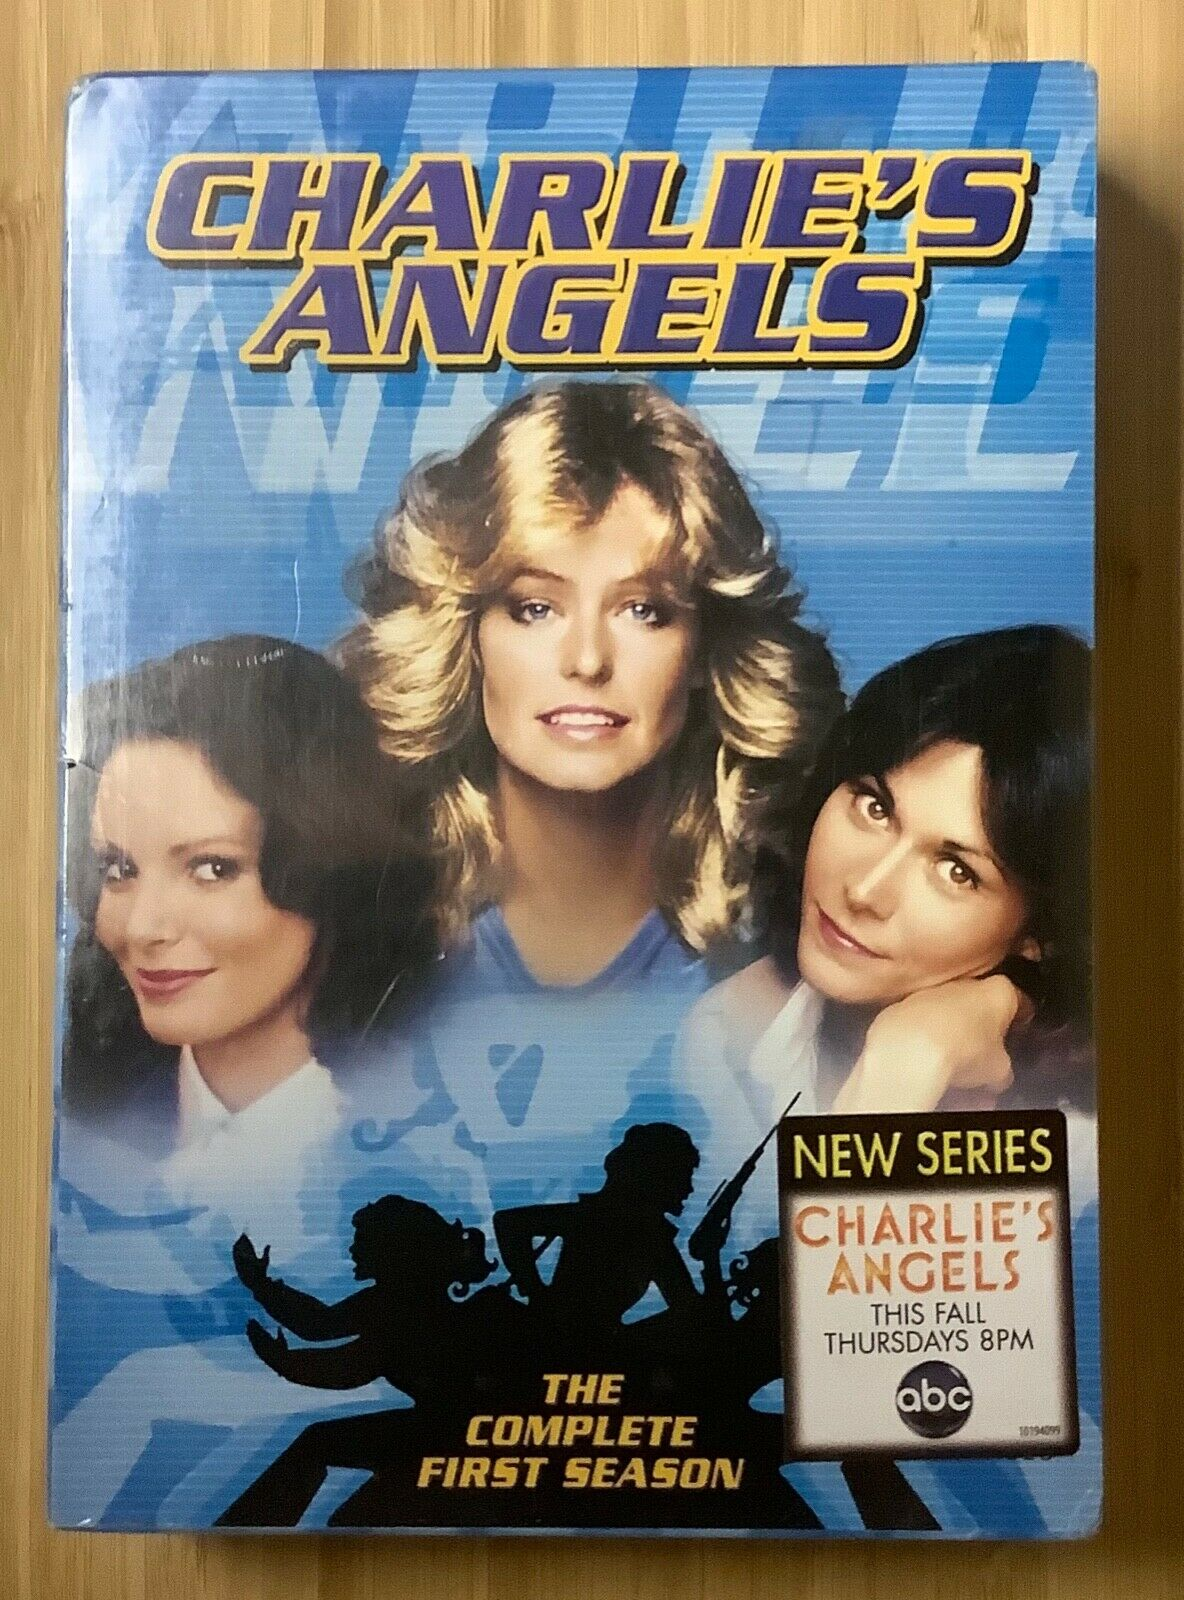 Charlie s Angels 1976 First Season DVD Farrah Fawcett Kate Jackson NEW SEALED - $20.00